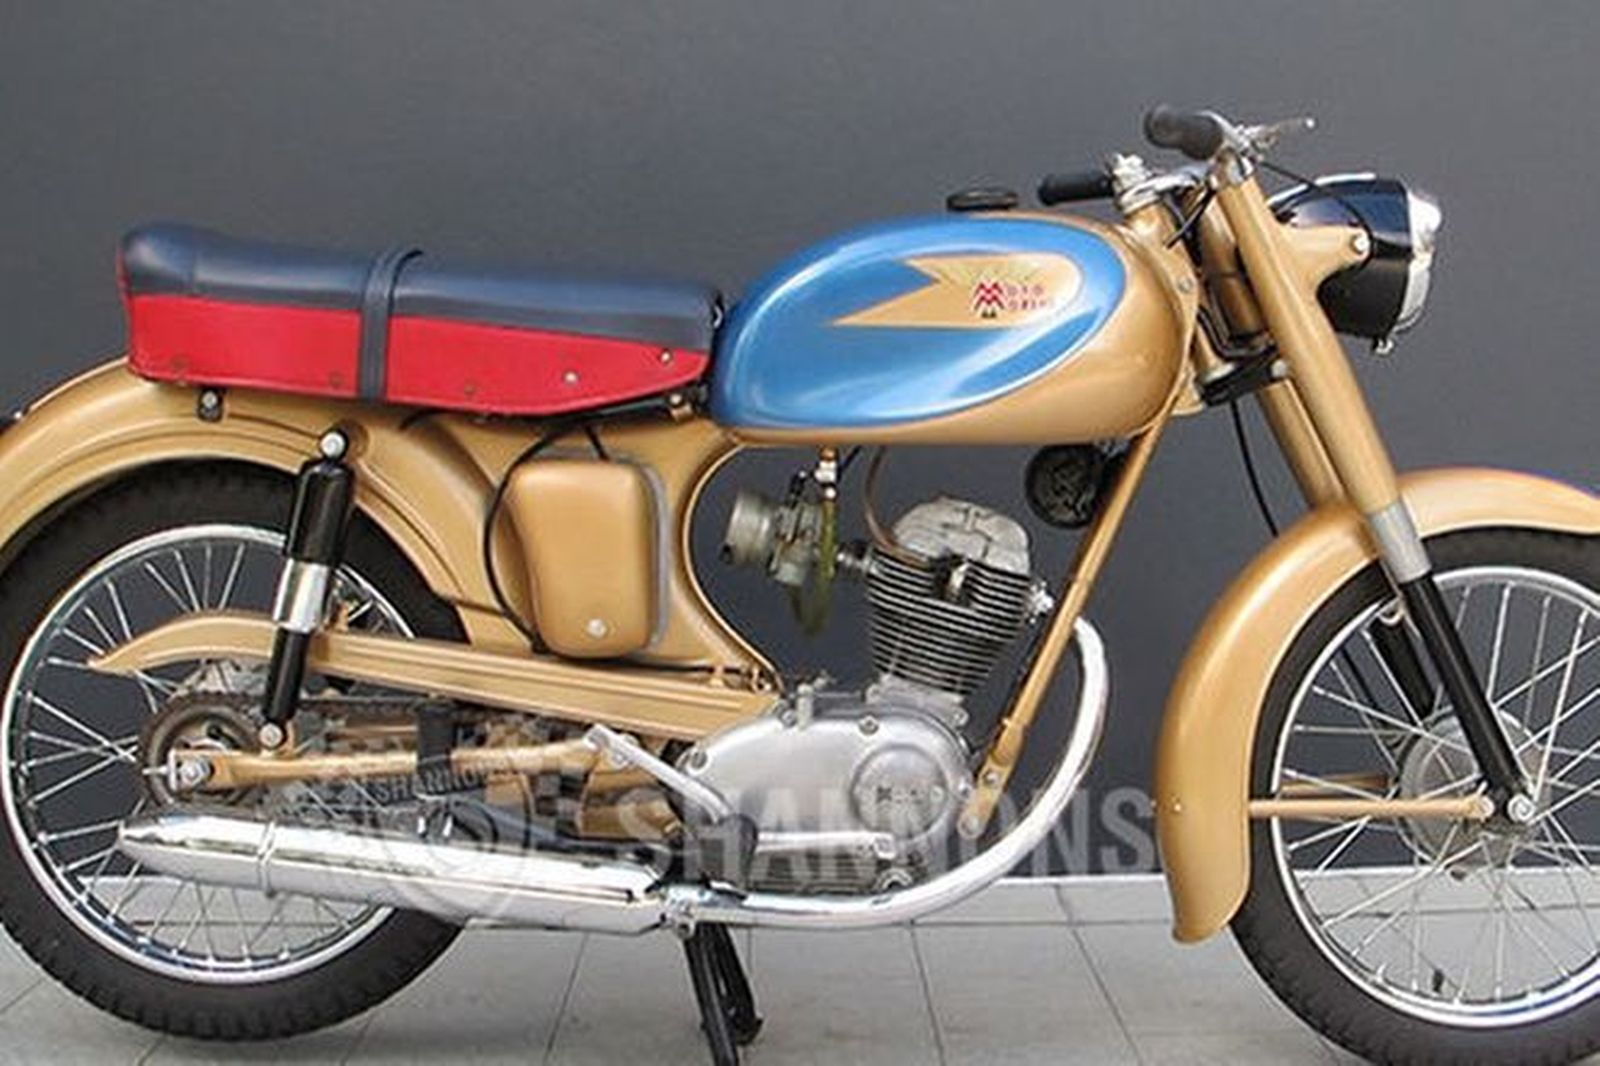 sold moto morini 100cc motorcycle auctions lot g shannons. Black Bedroom Furniture Sets. Home Design Ideas